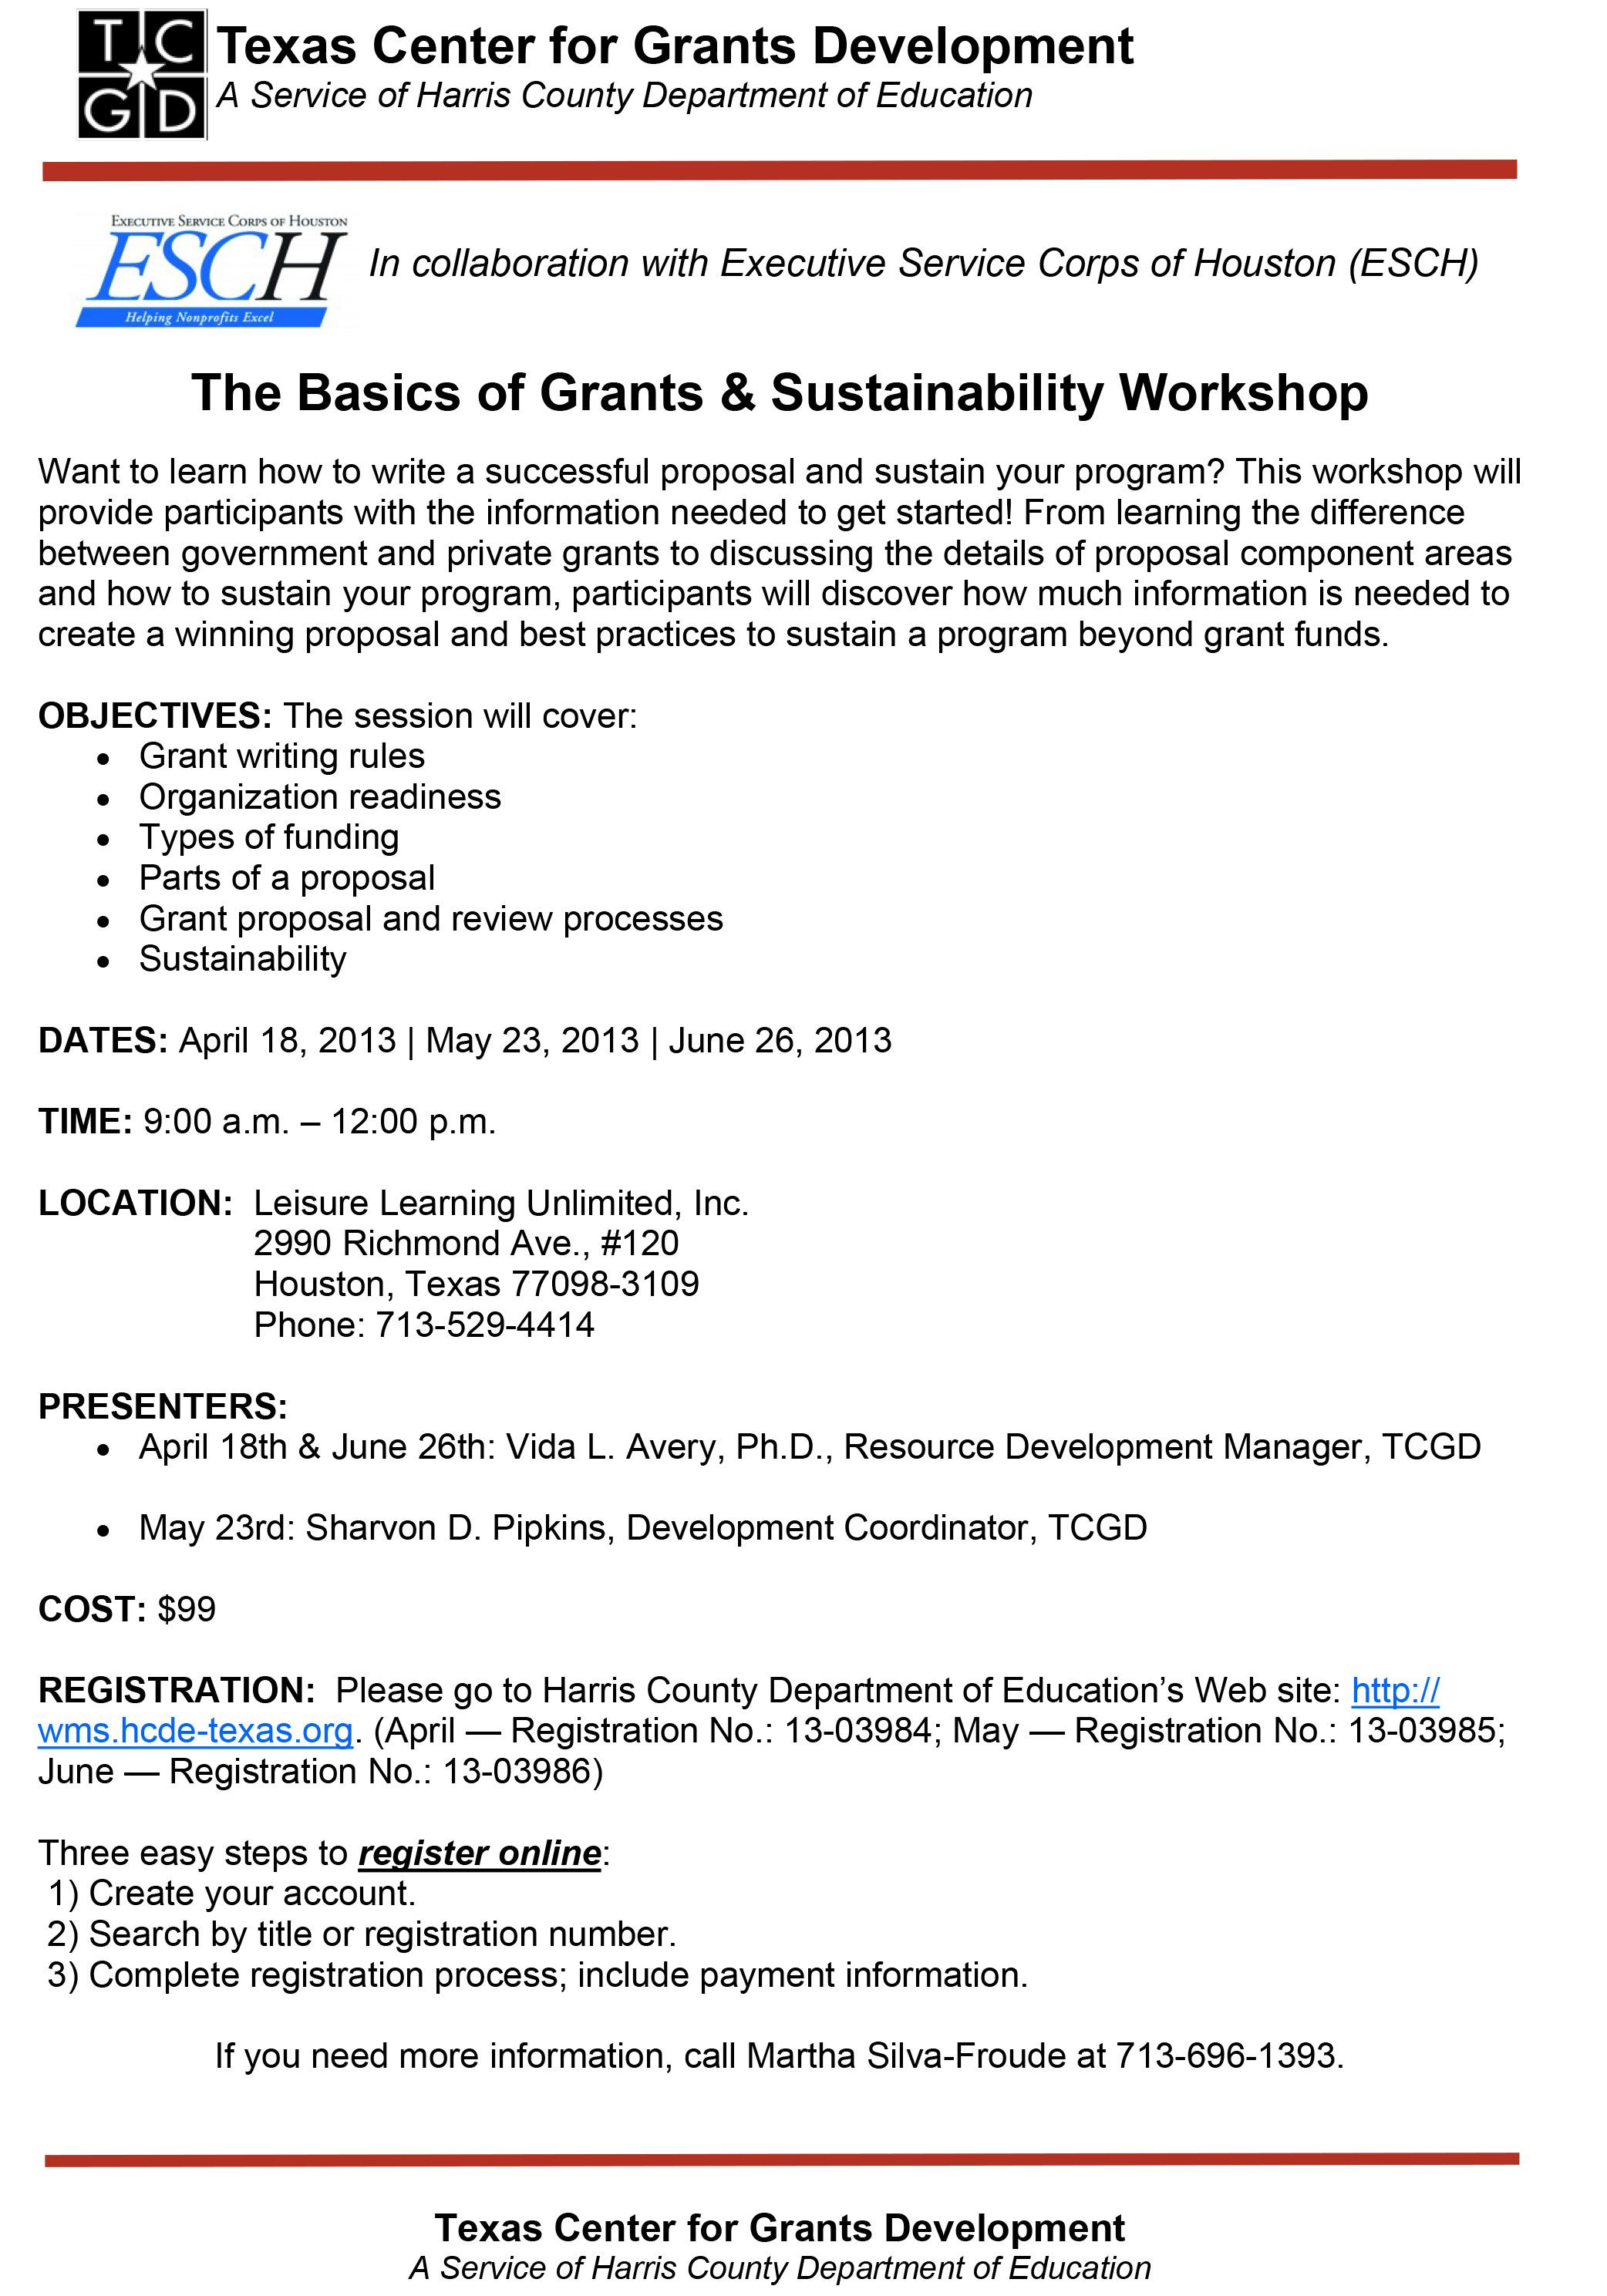 Basics Of Grants And Sustainability Workshop  Get Started With